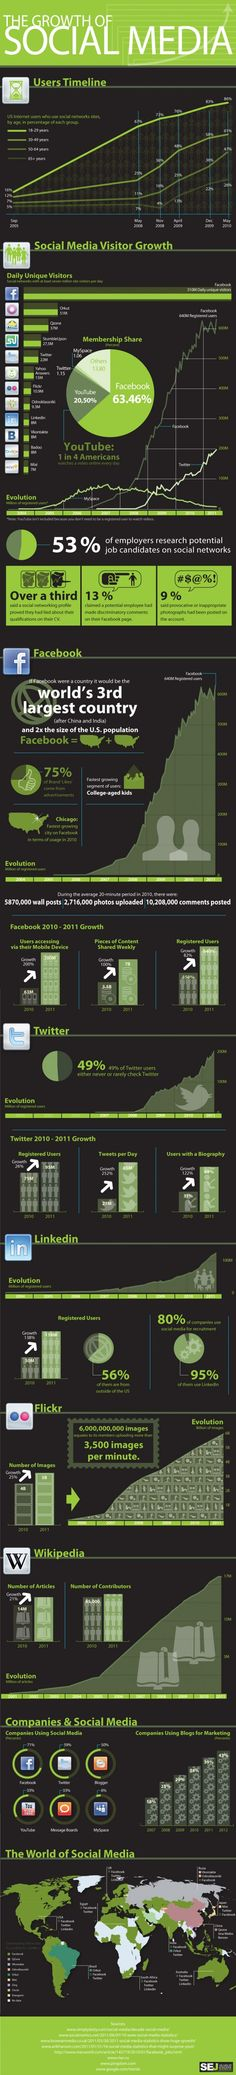 Infographic - The Growth Of Social Media